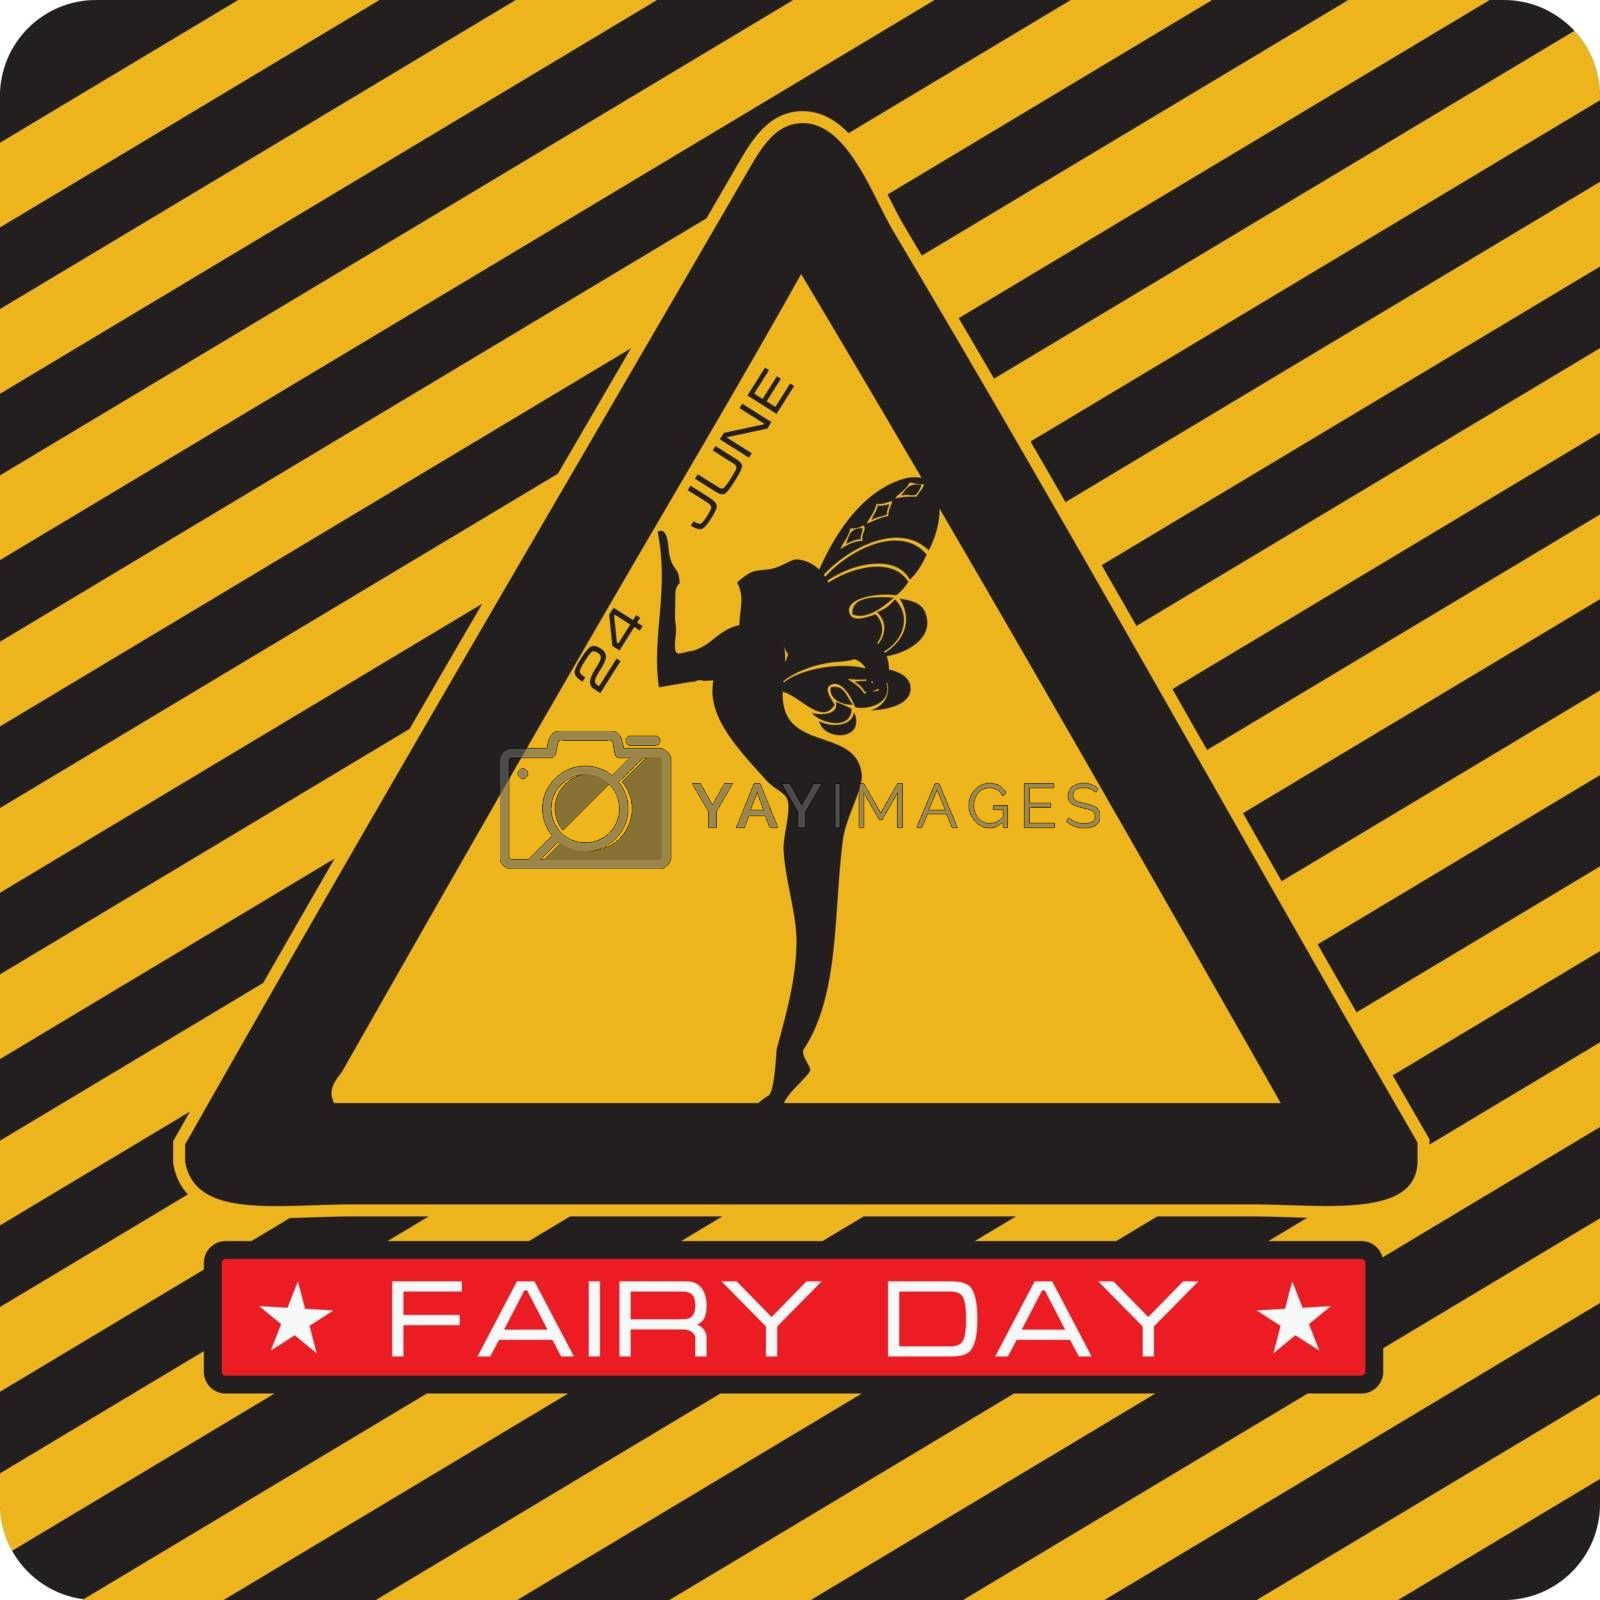 Attention - Fairy Day. Industrial holiday symbol for Fairy Day